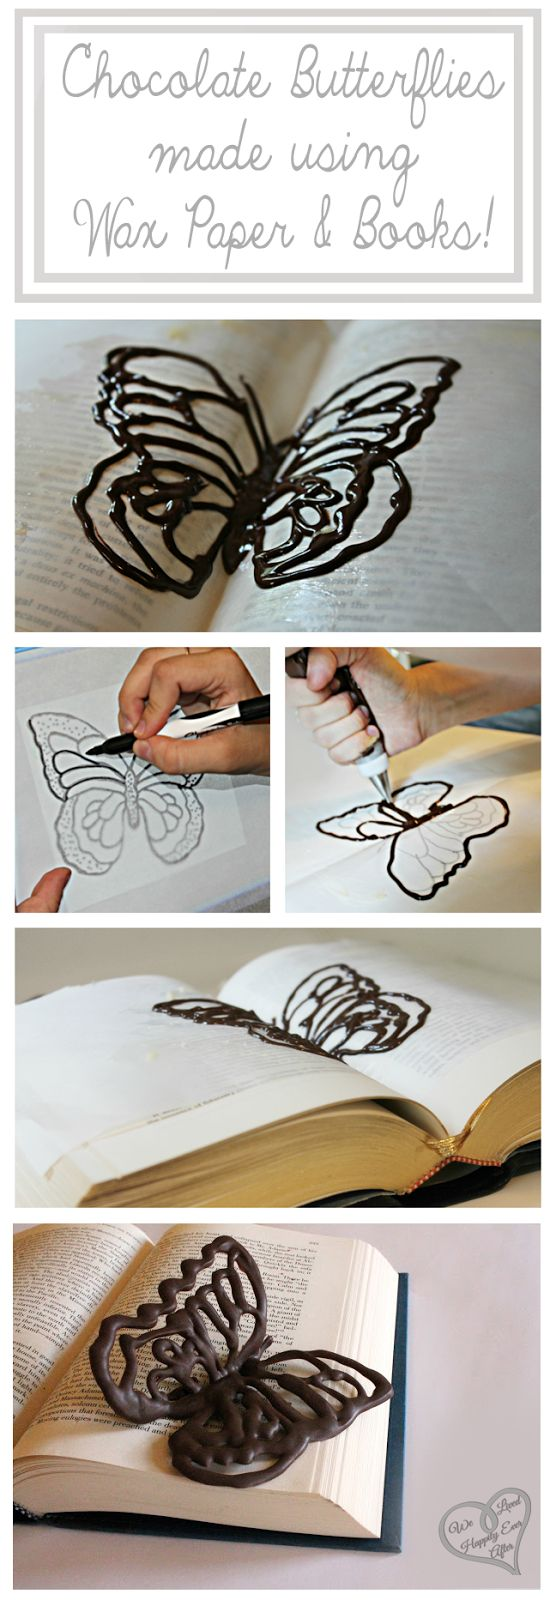 Make Chocolate Butterflies Using Wax Paper and Books!